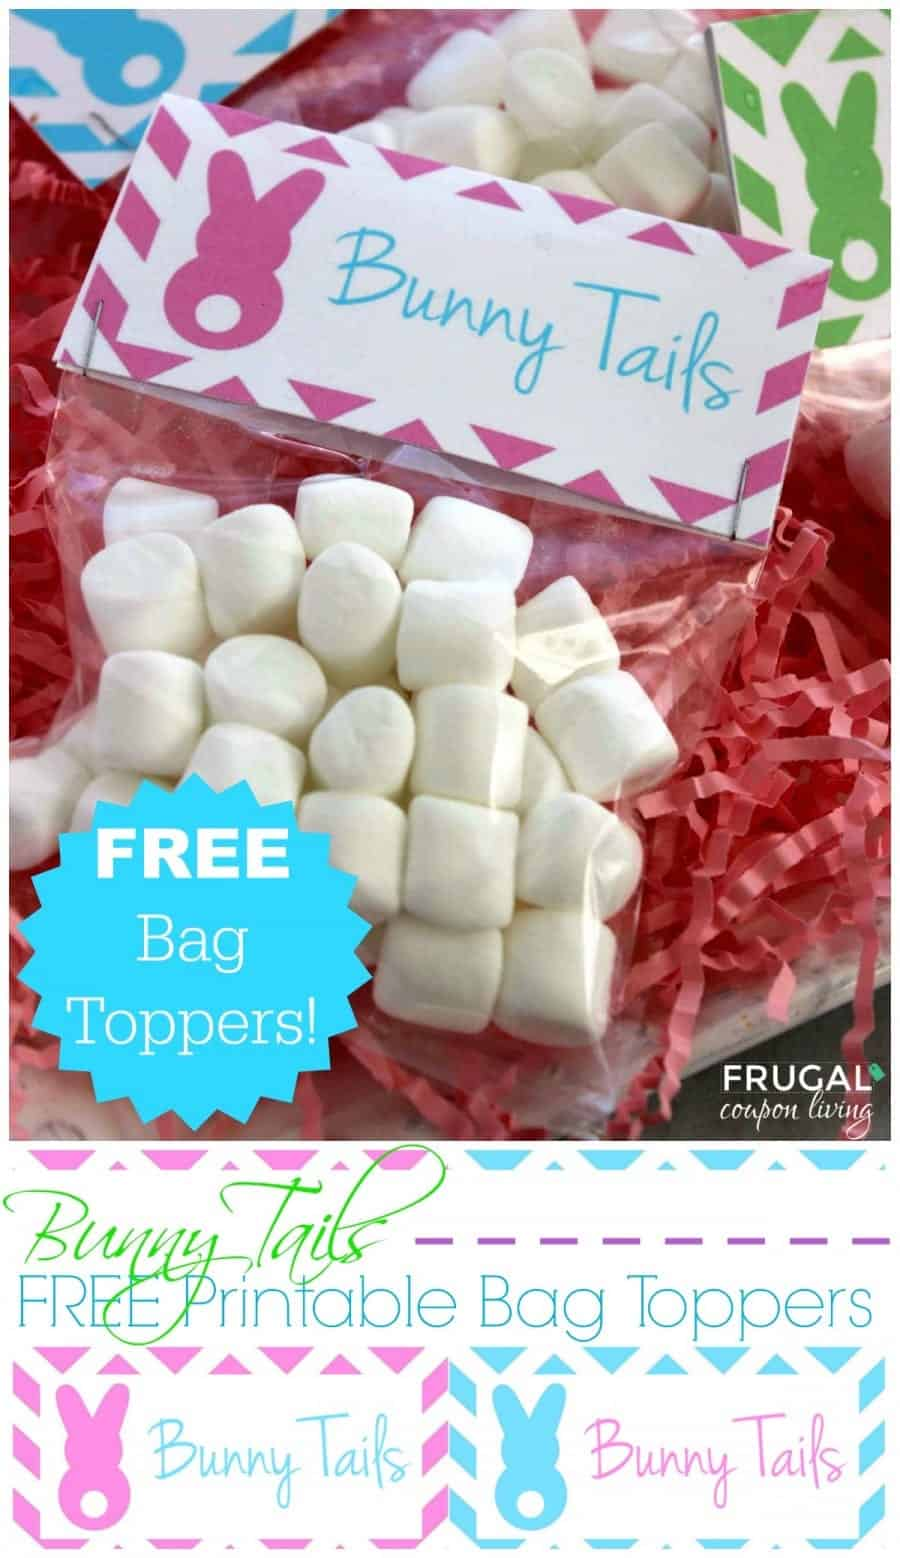 Bunny-Tails-Free-Printable-Bag-Topper-Frugal-Coupon-Living